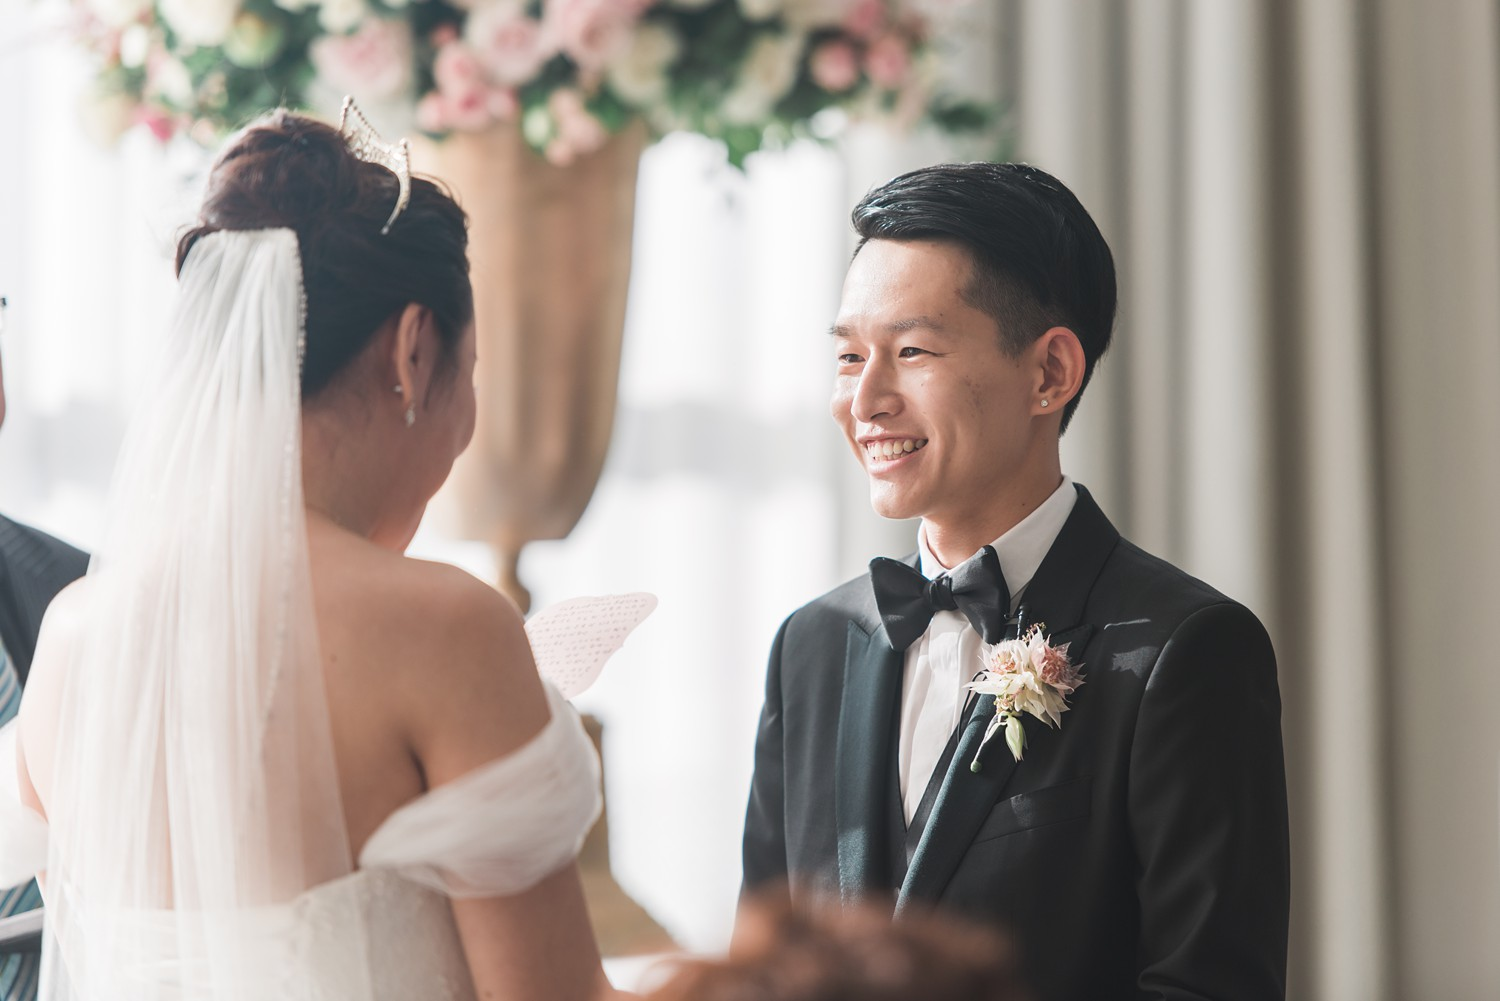 Happy Groom at Wedding Ceremony Vinci Room Luxury Yorkville Toronto Four Season Hotel Wedding Photos with Chinese Bride and Groom